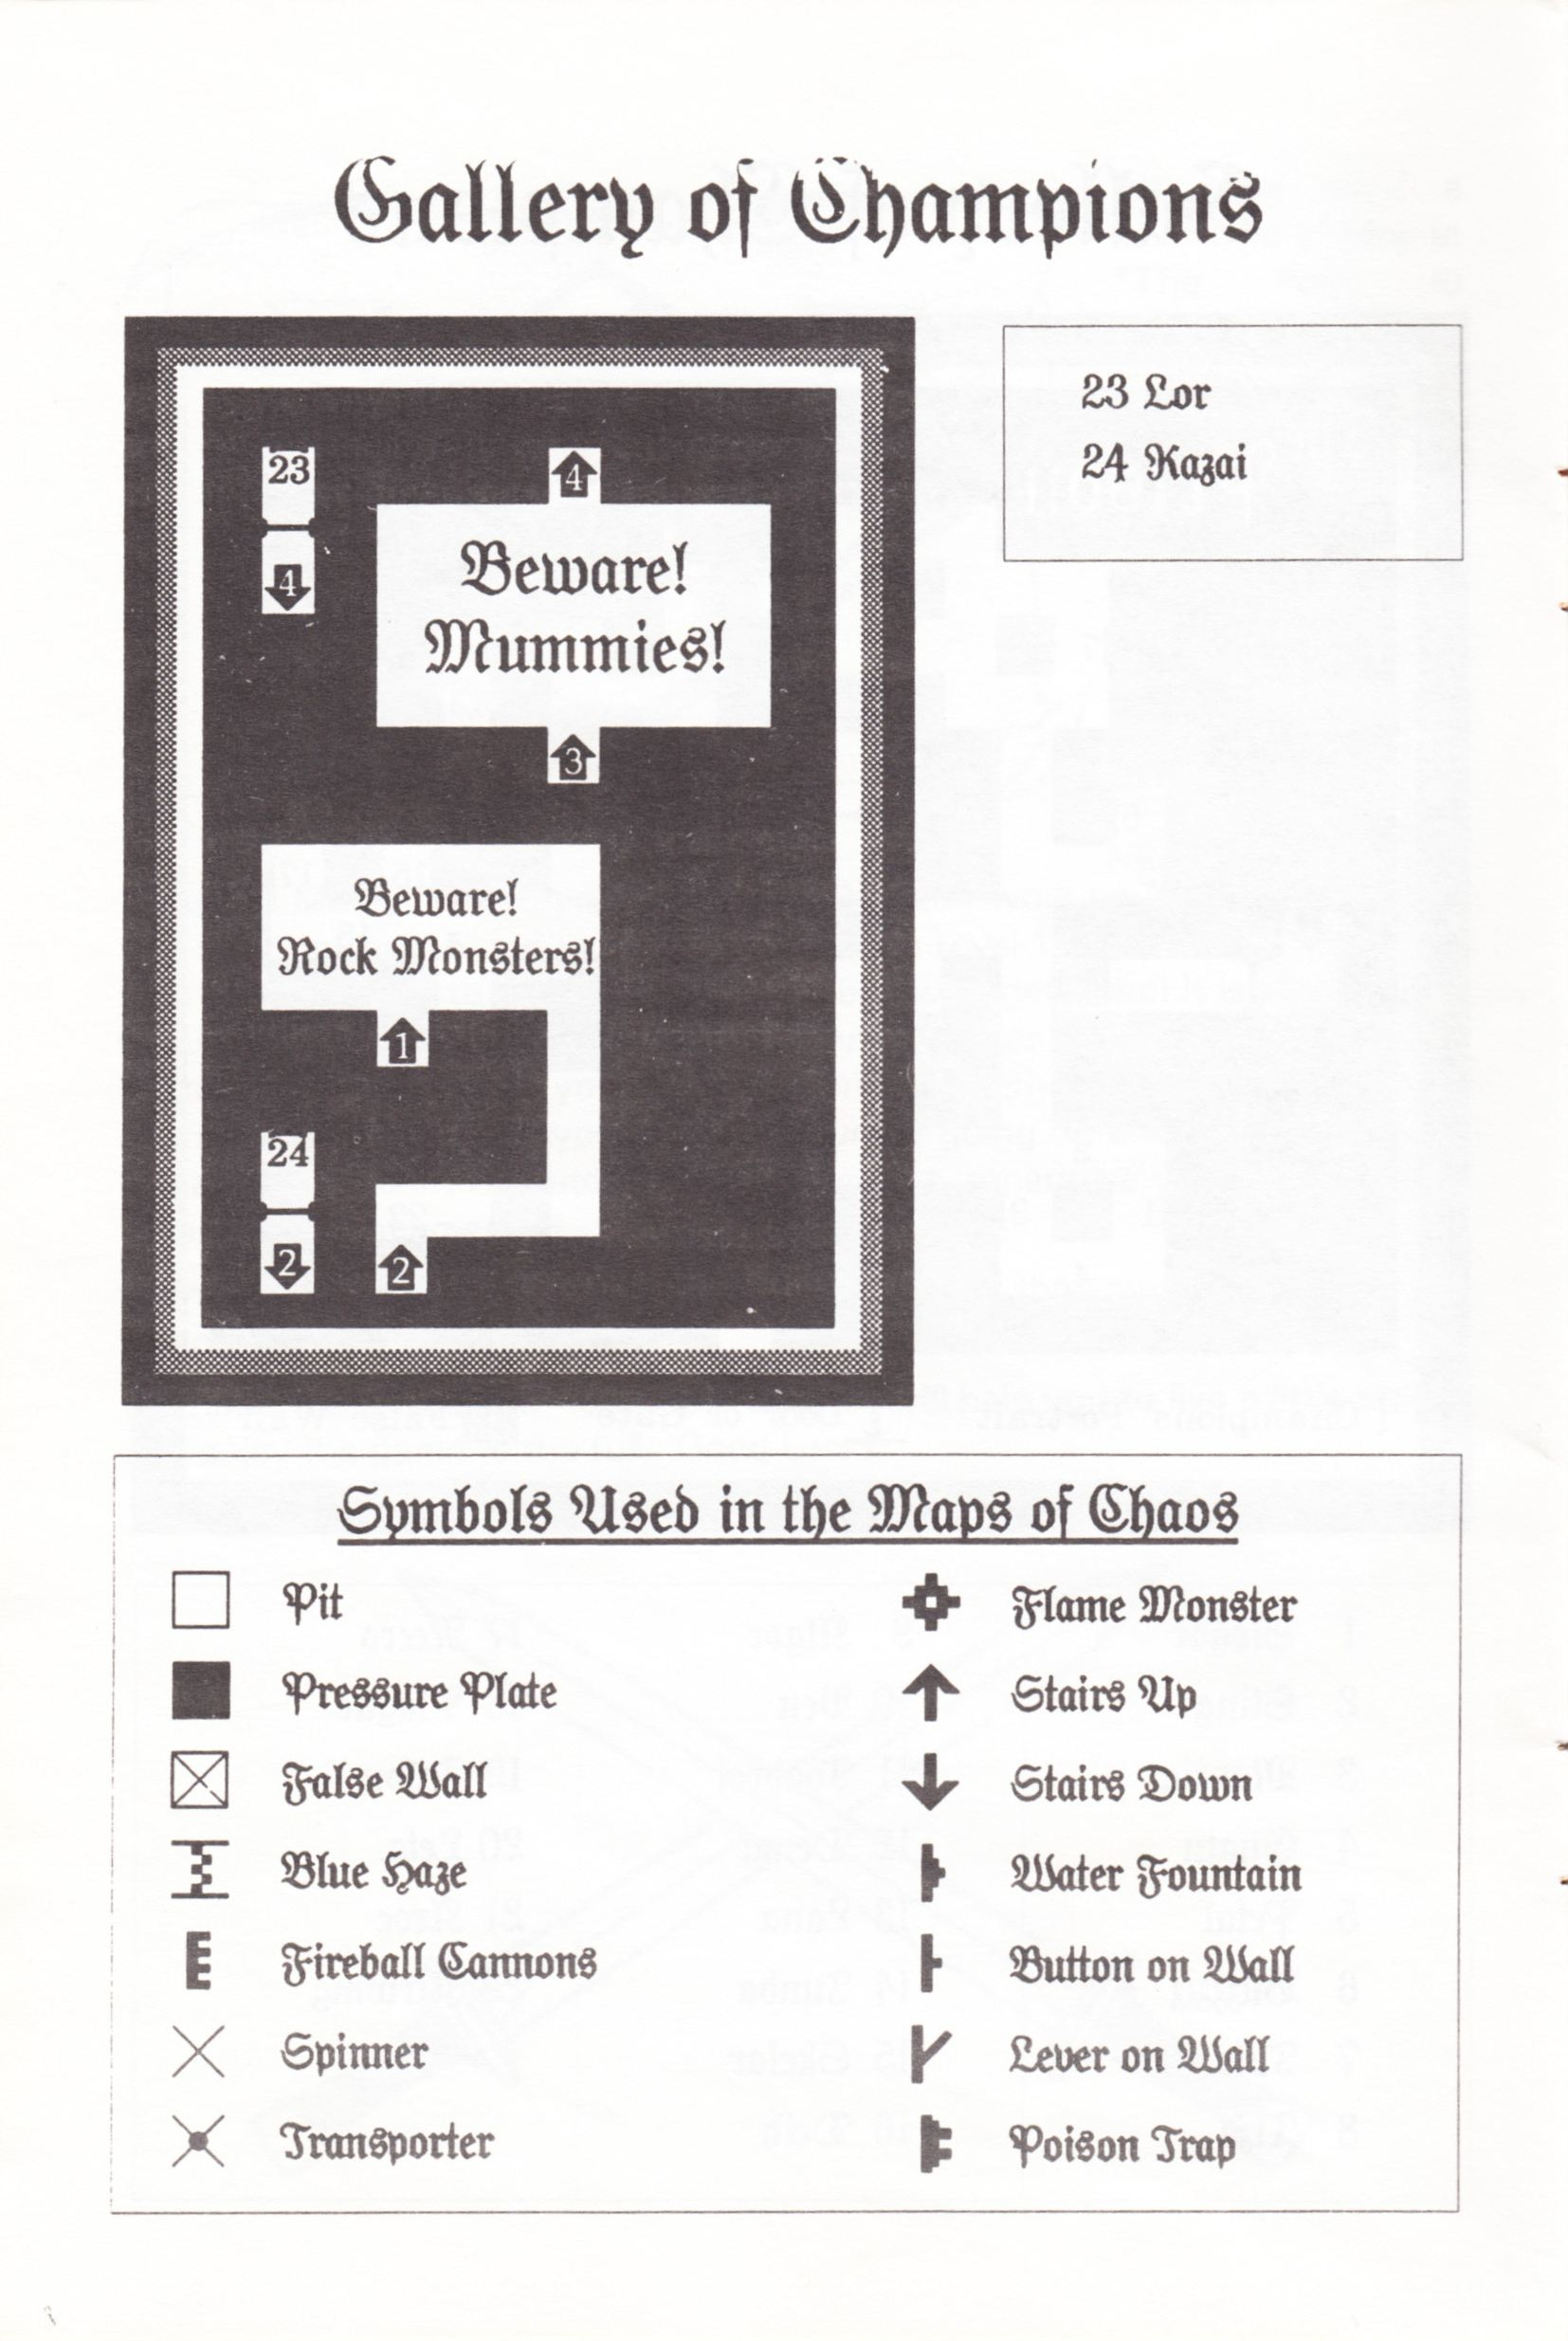 Tool - The Chaos Editor - UK - Atari ST - Manual - Page 008 - Scan